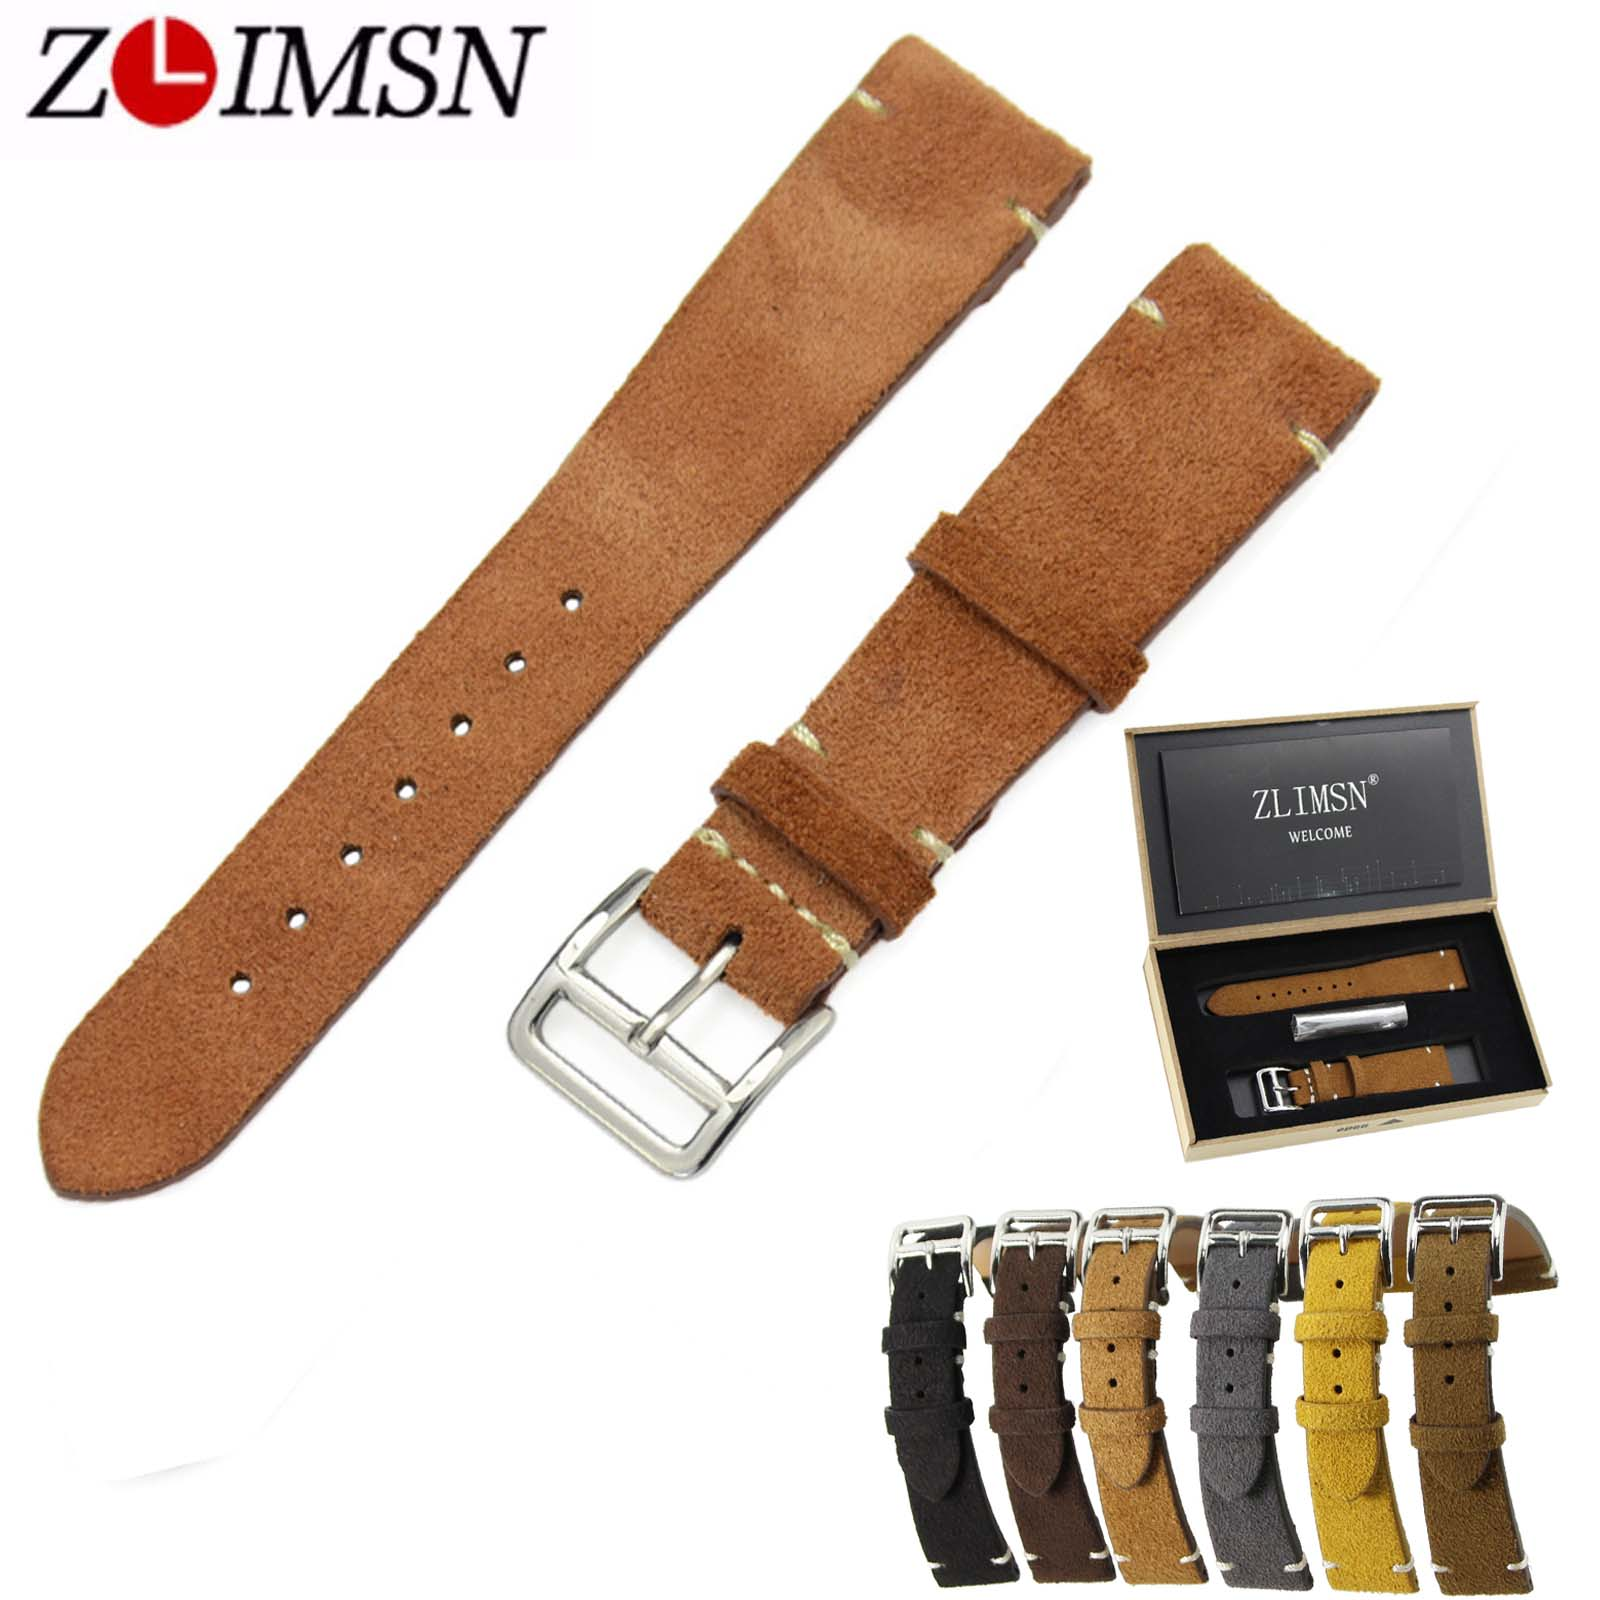 ZLIMSN Genuine Leather Watch Bands Replacement 20mm Grey Brown Black Yellow Watchband Silver Polished Stainless Steel Buckle цена и фото